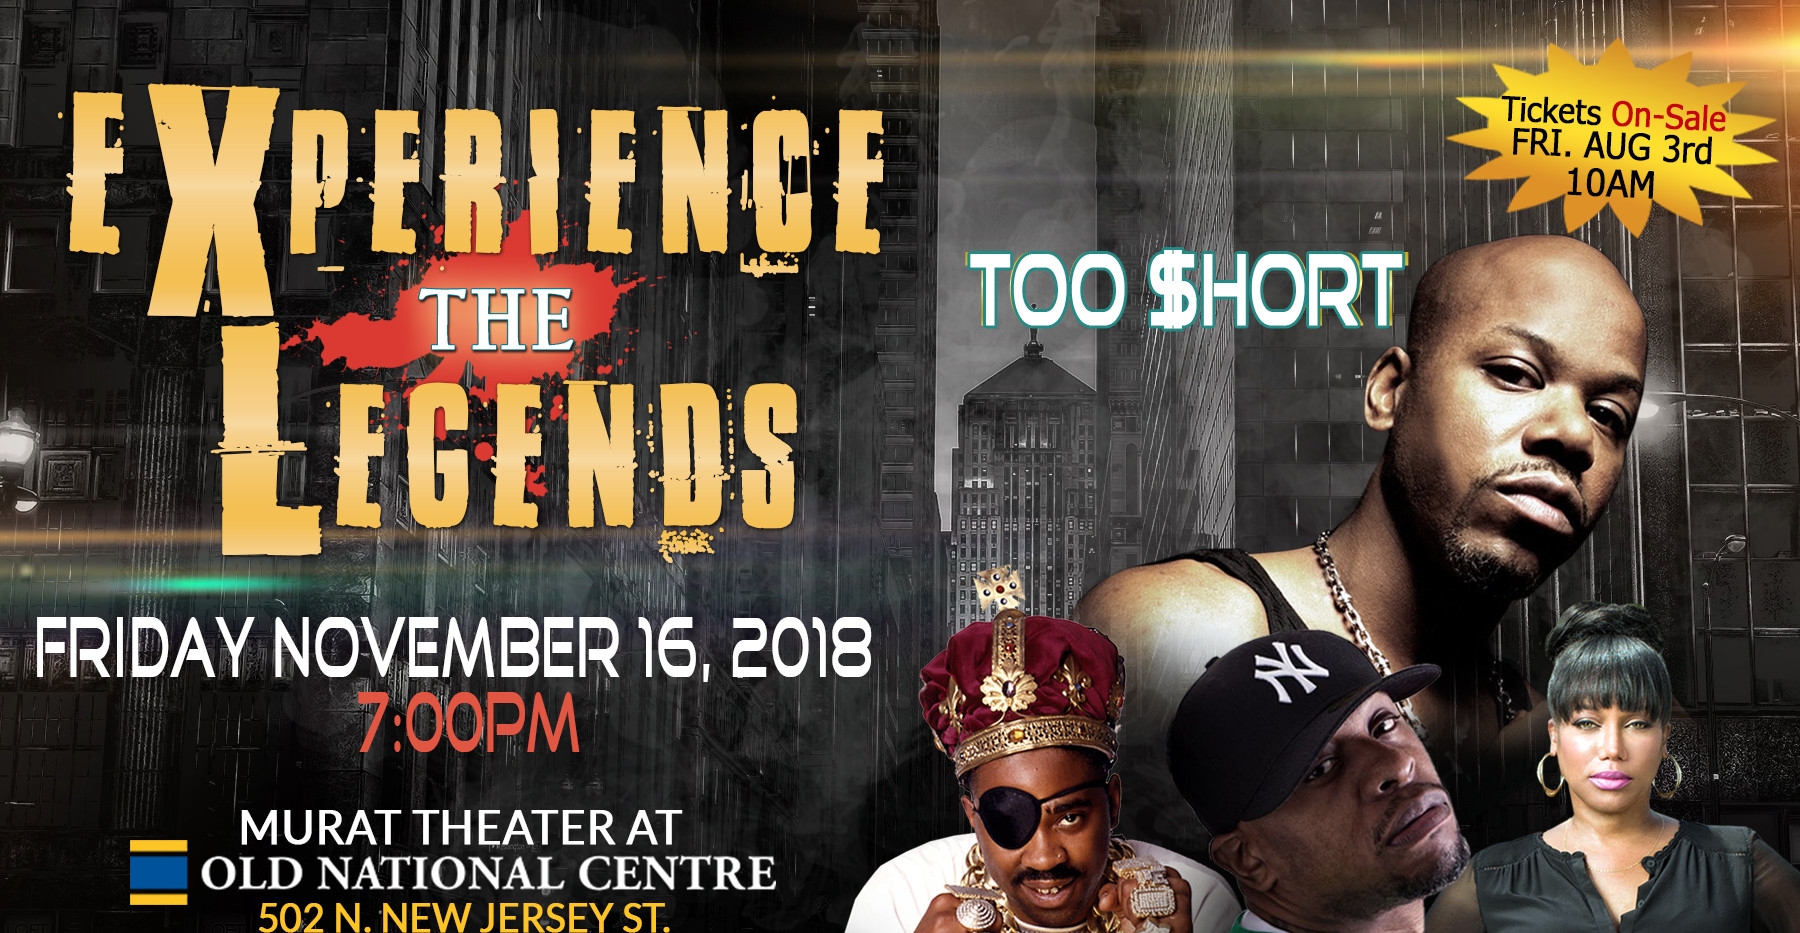 Experience the Legends Indiana Flyer On